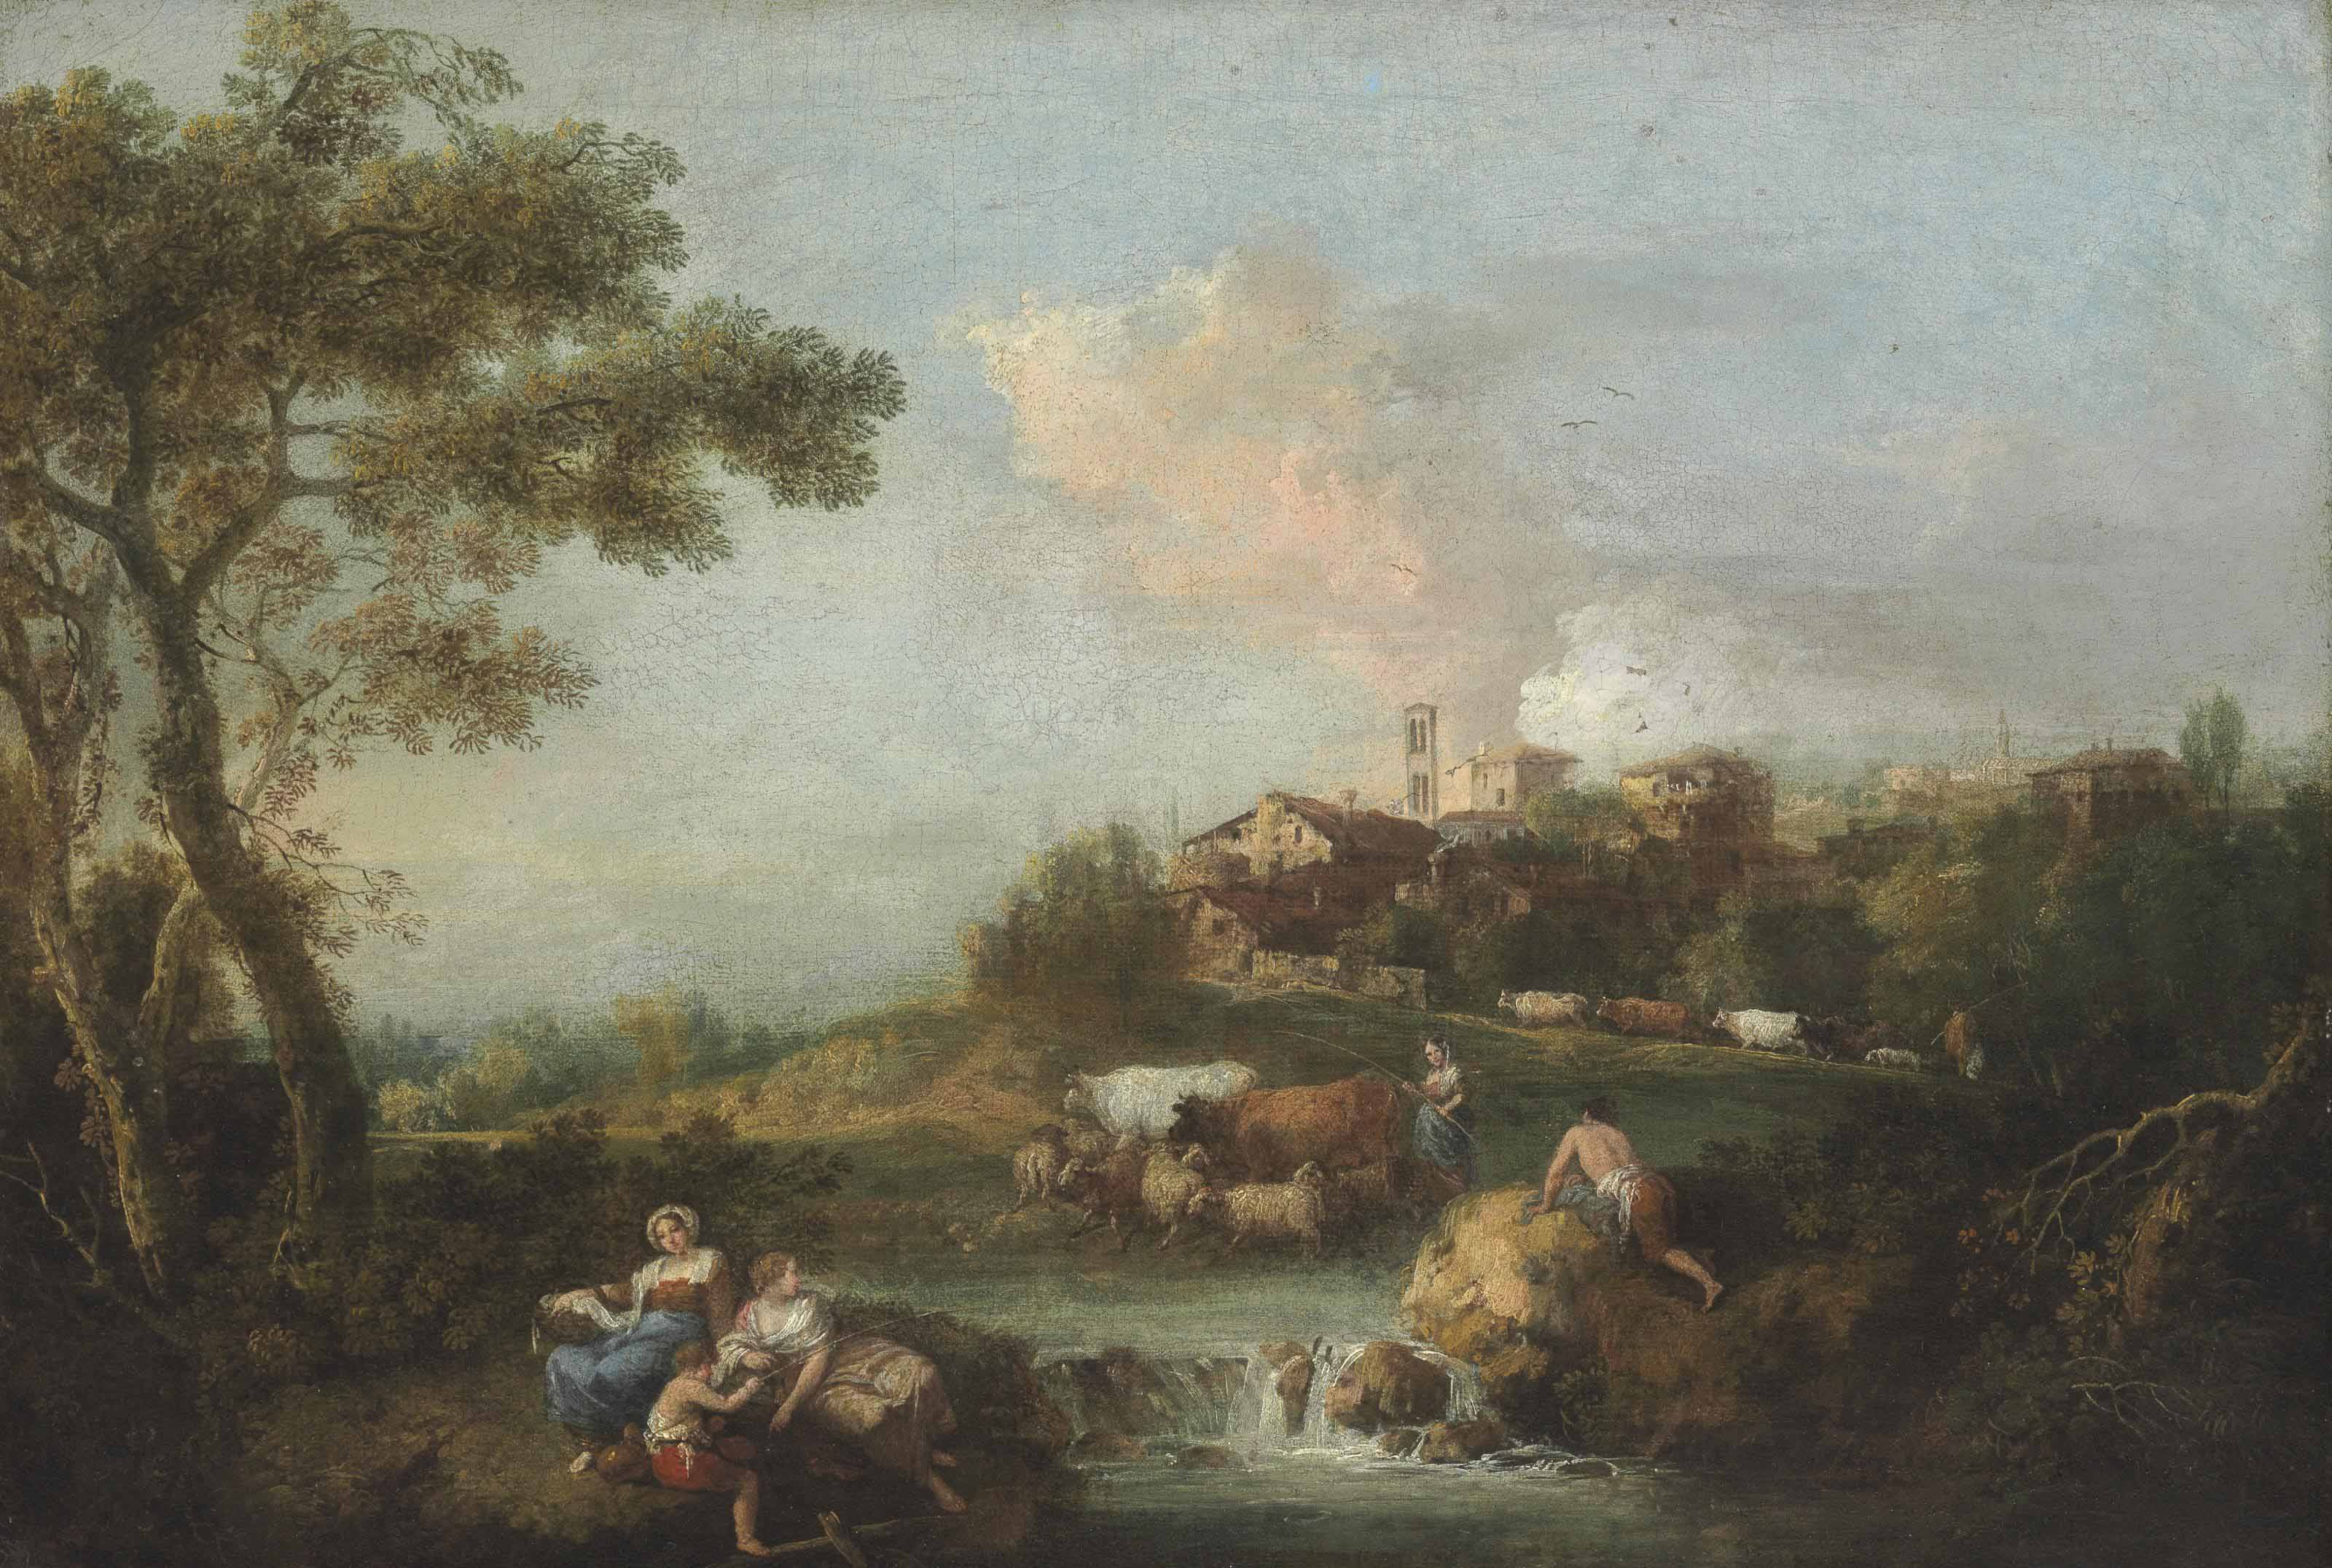 Shepherds and shepherdesses fishing by a stream in an Italianate landscape